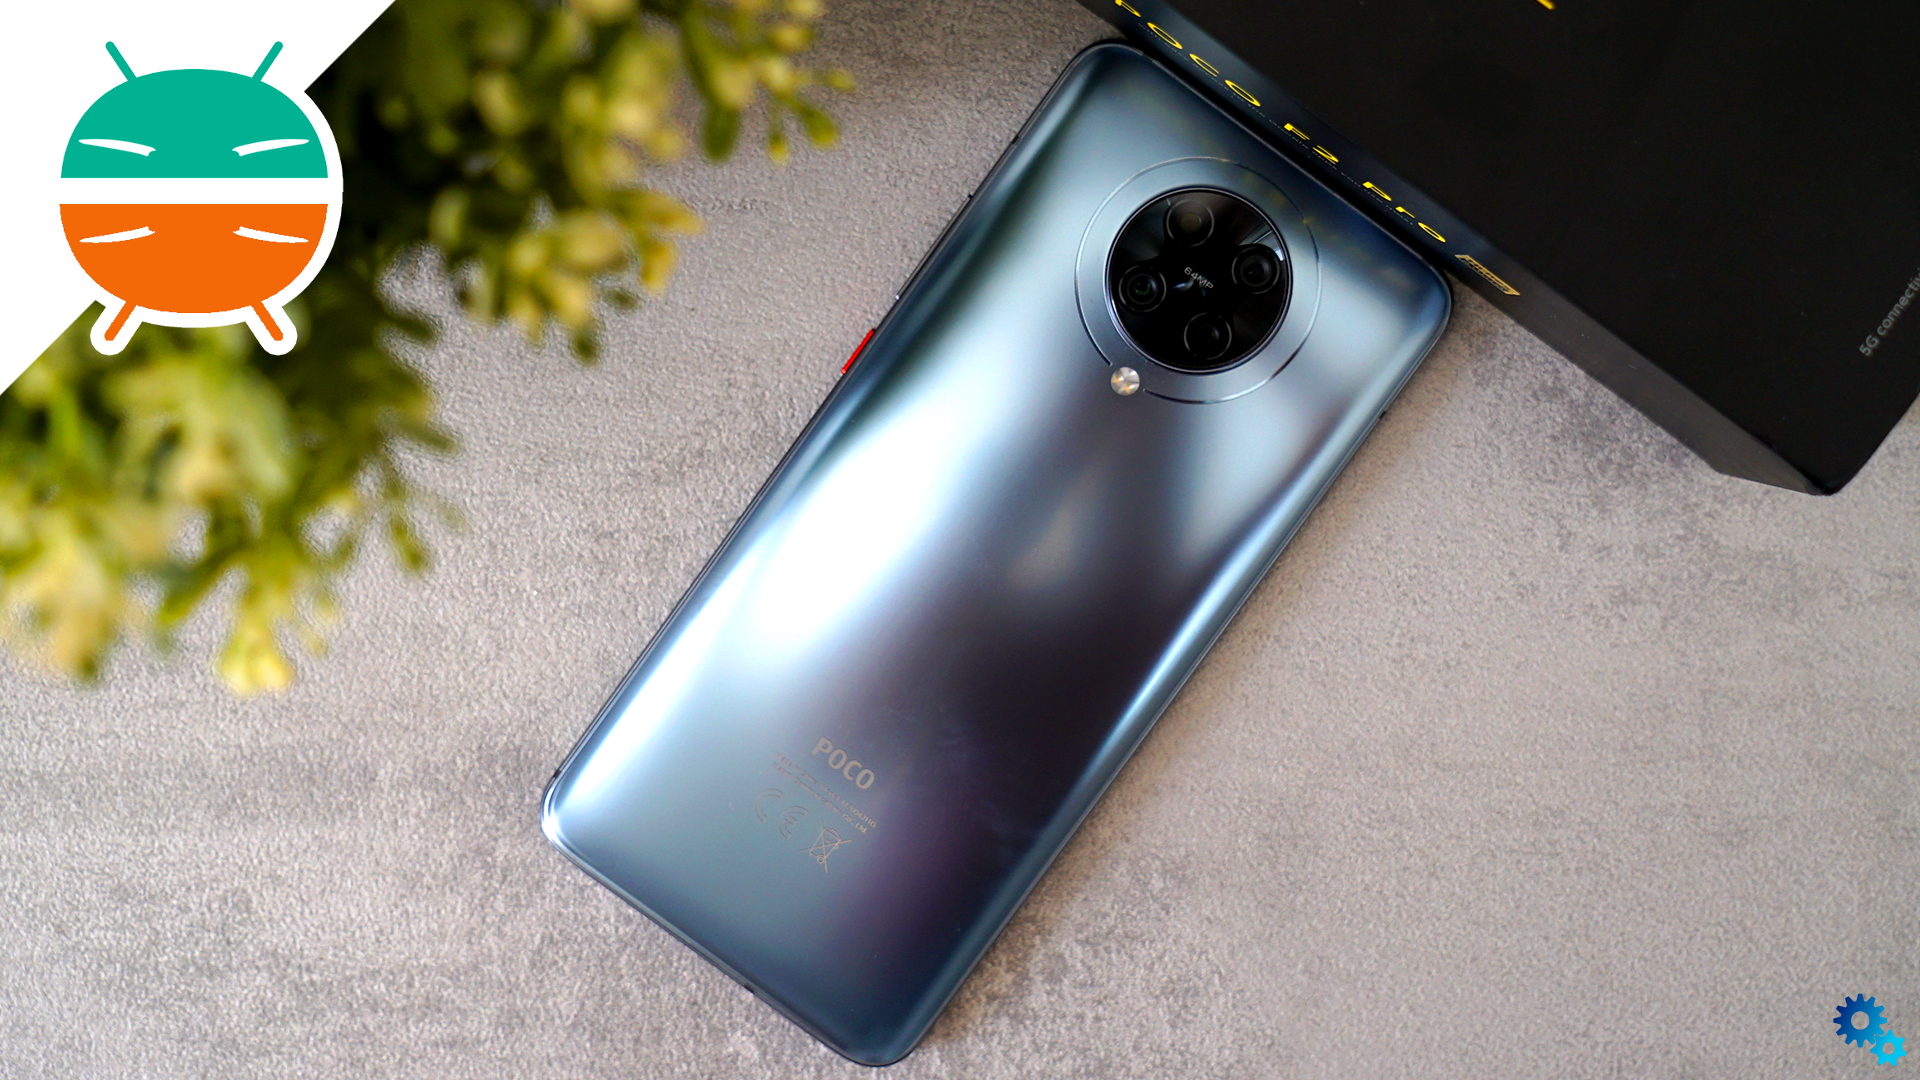 Bad surprise for the price of POCO F2 Pro in - Bad surprise for the price of POCO F2 Pro in Italy? ...